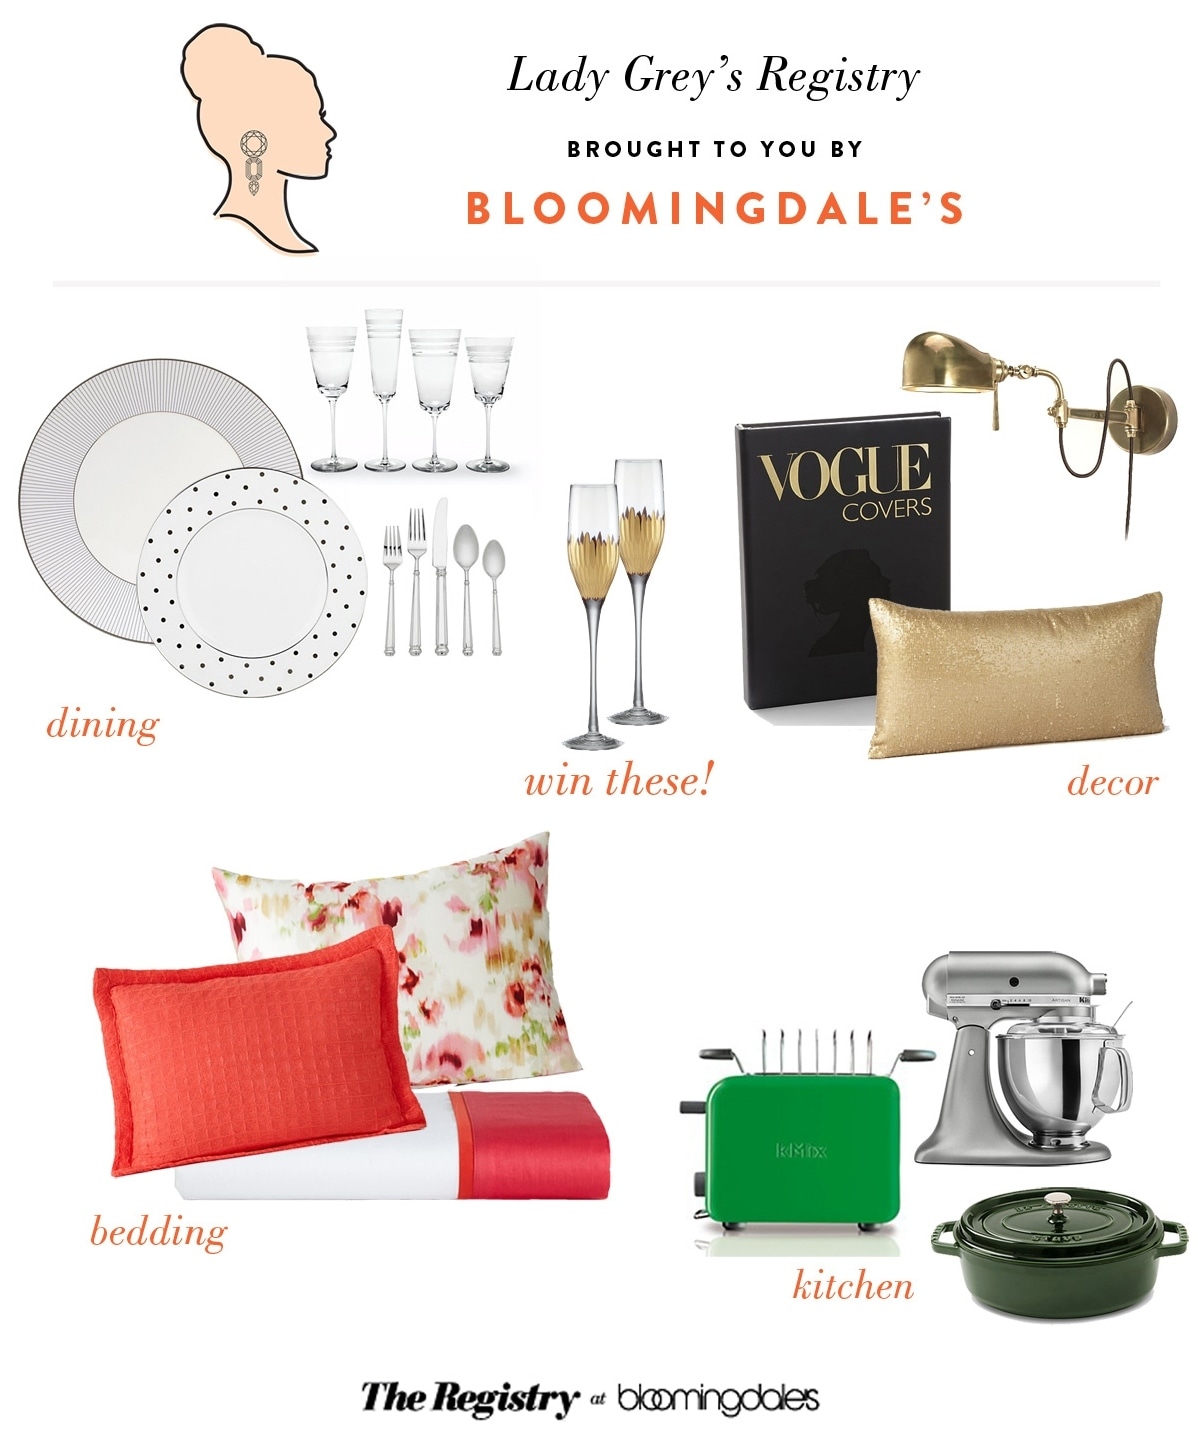 Insider's Guide to Finding Discounts and Deals at Bloomingdale's